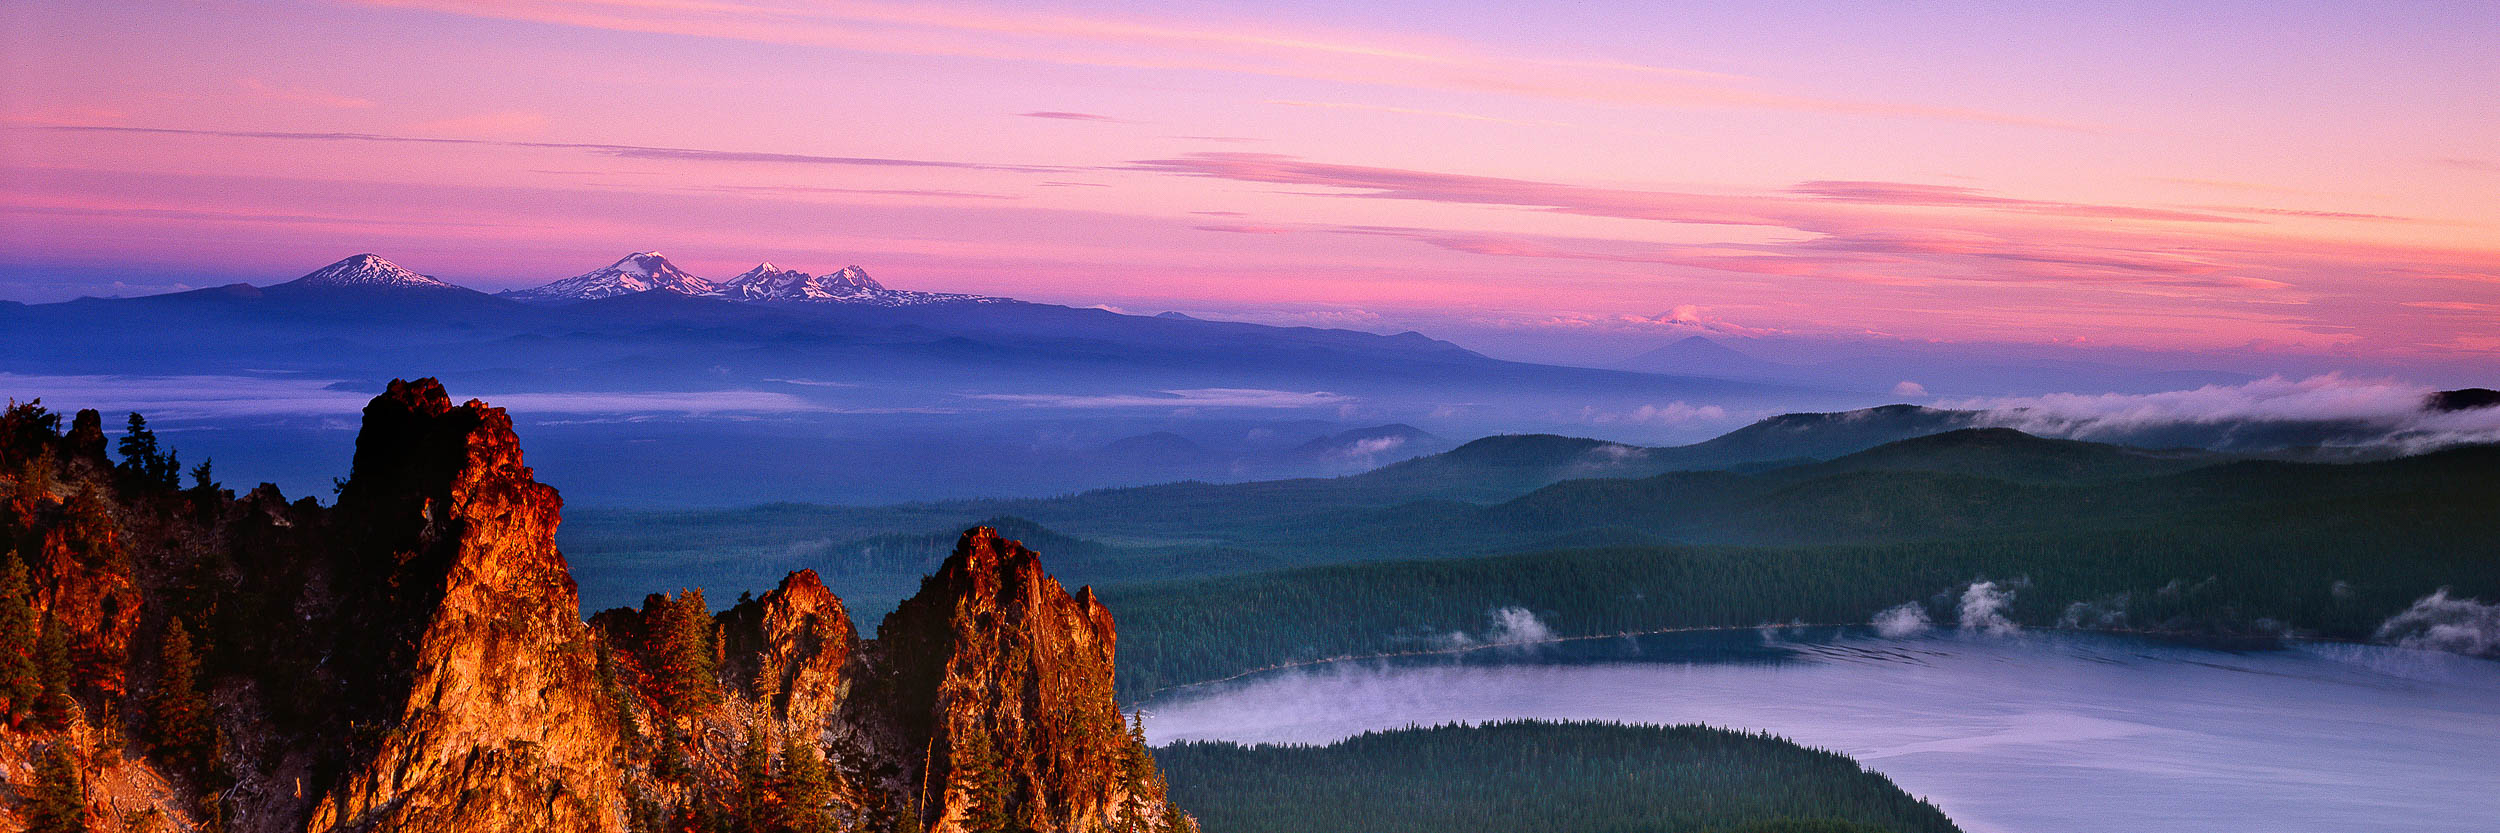 Bend Oregon Photography Tours